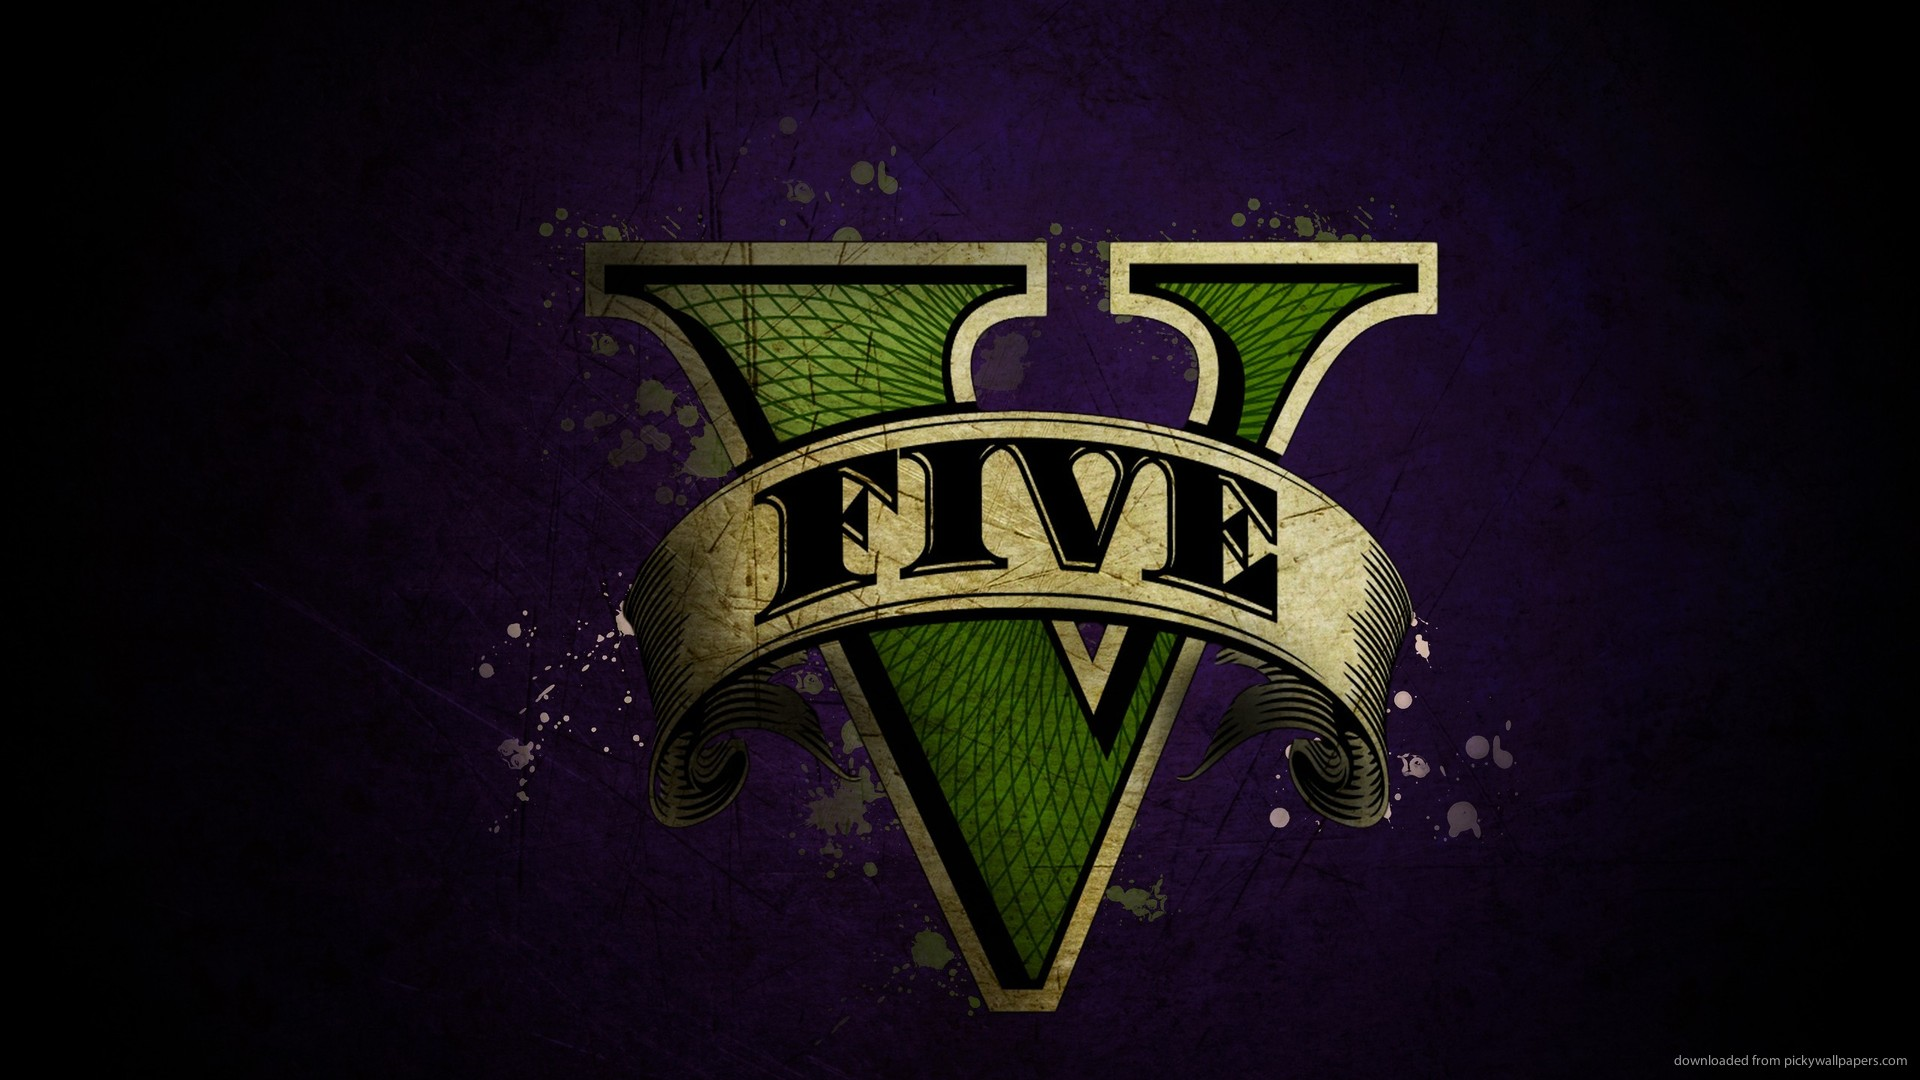 gta 5 logo wallpaper1920x1080 GTA 5 Logo Wallpaper 7EE2my6P 1920x1080